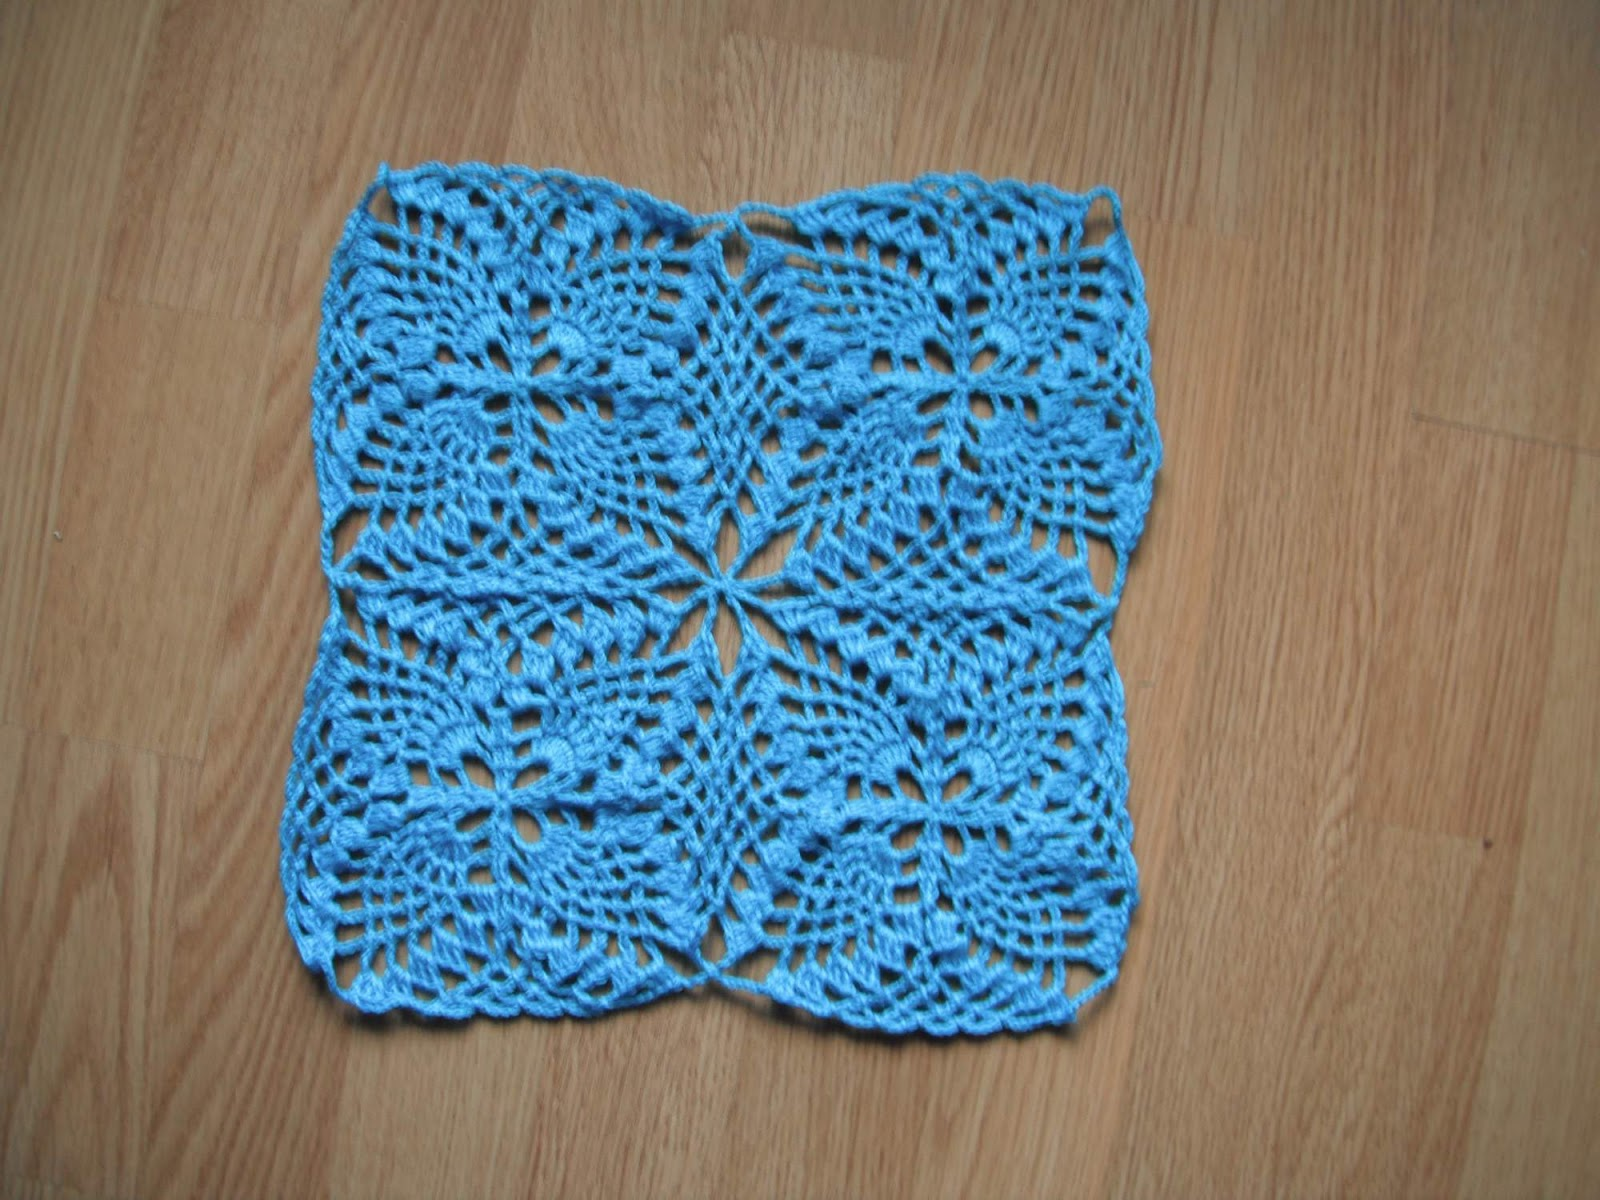 Free Crochet Patterns You Can Sell : Free crochet patterns and video tutorials: How to crochet ...